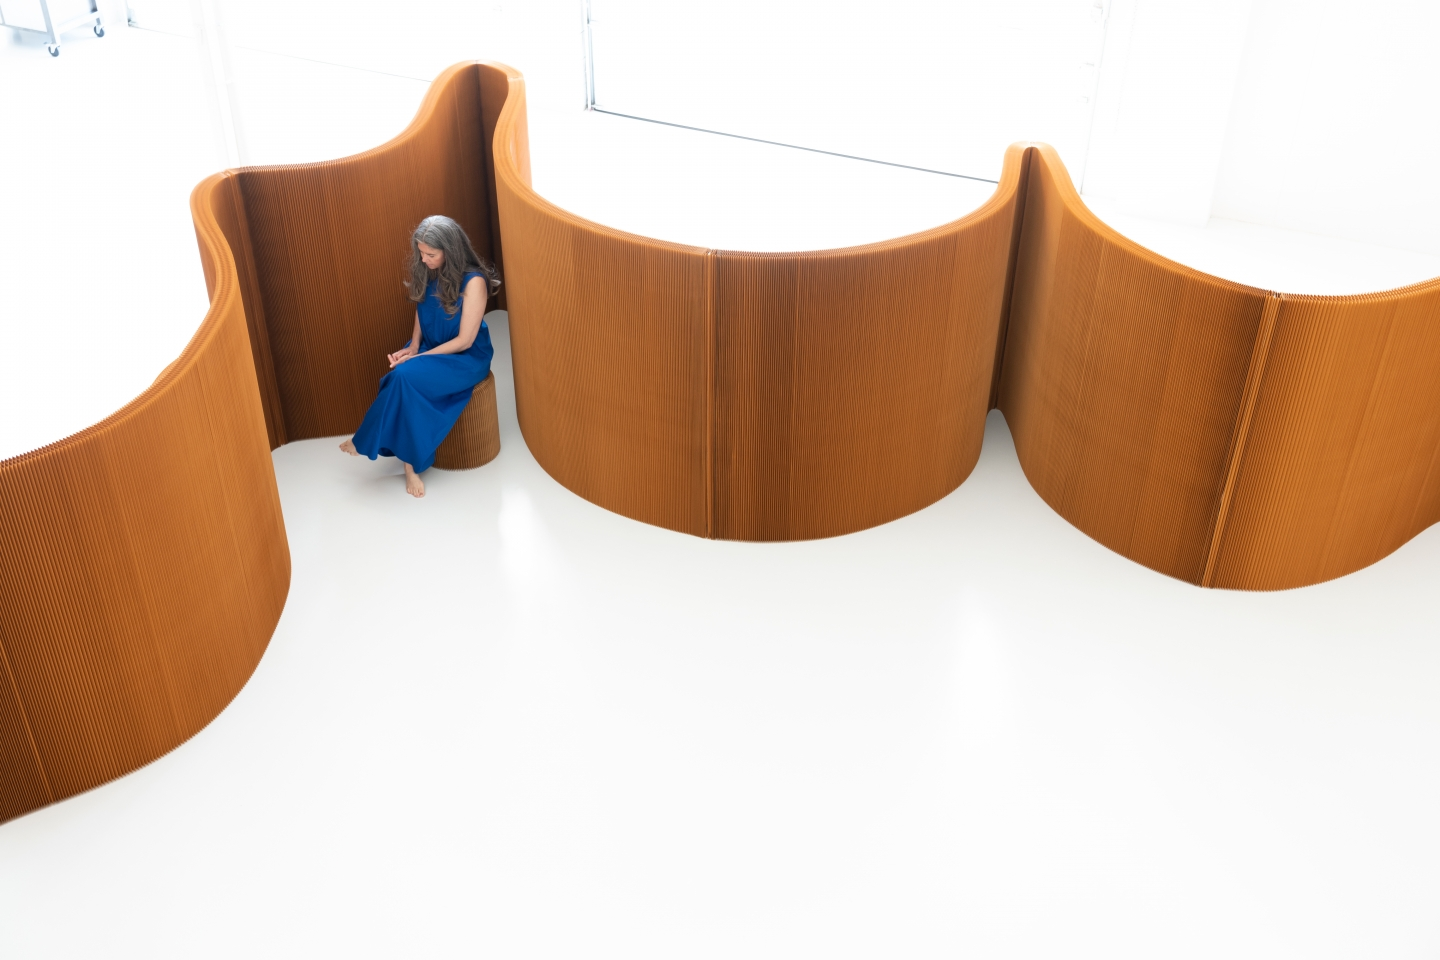 a woman sits on a folding paper stool behind benchwall, a paper furniture system